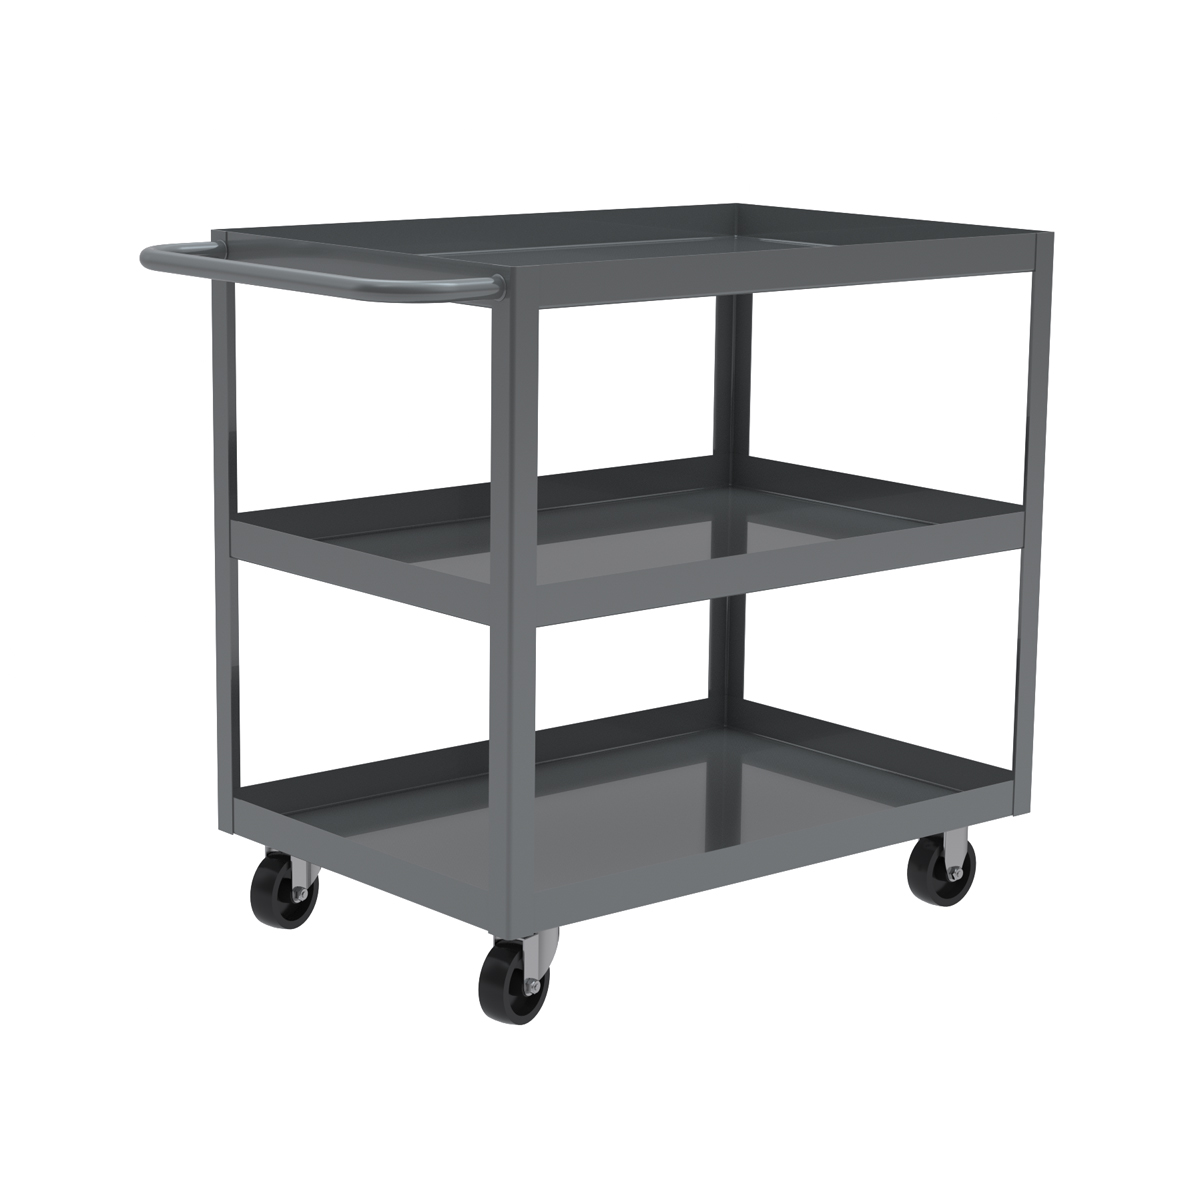 Portable Tables & Carts